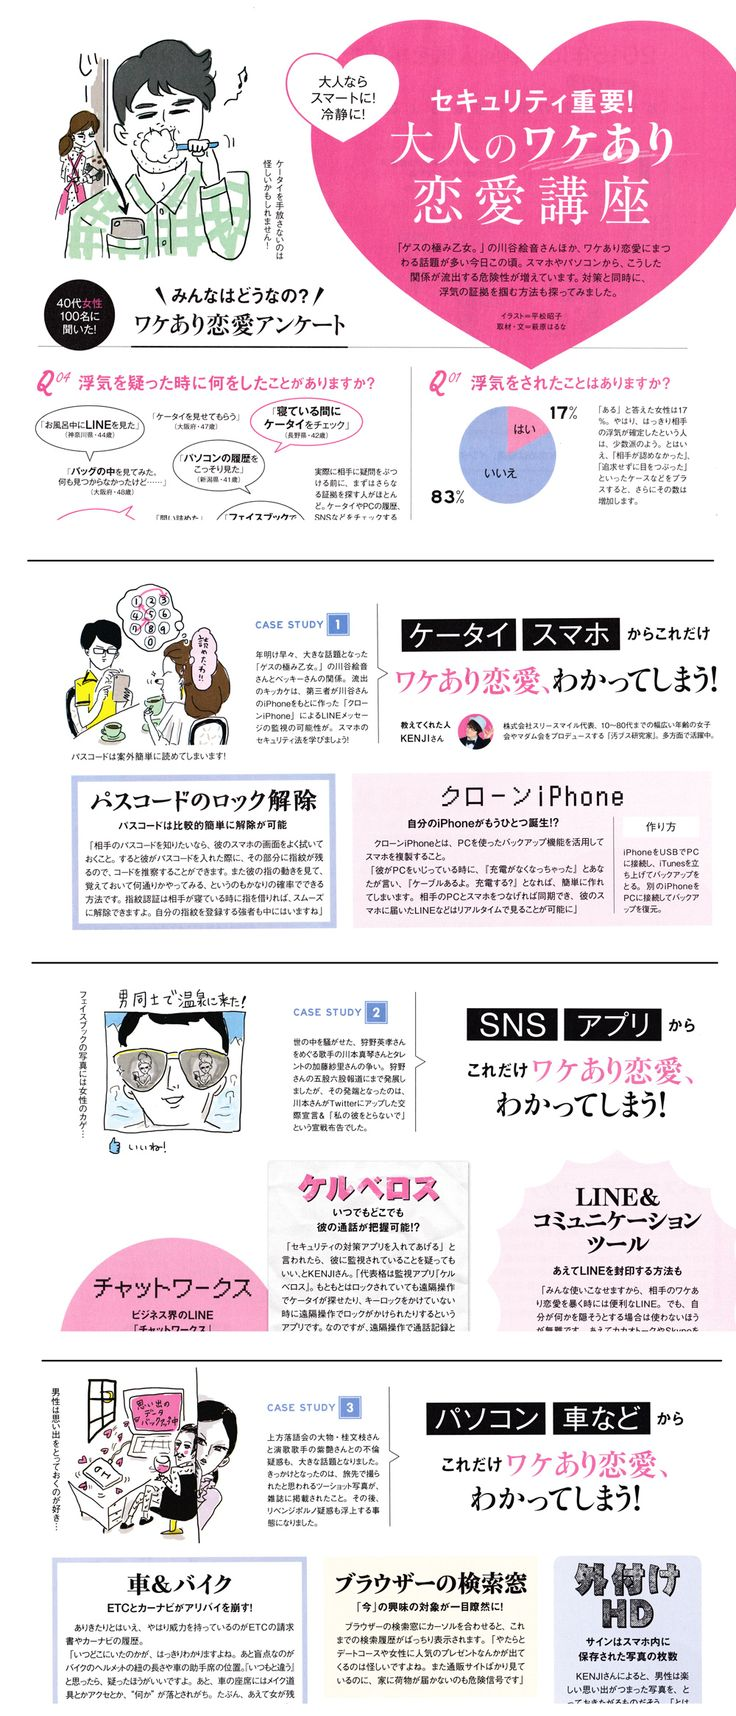 GLOW  2016 MAY 大人のワケあり恋愛講座Special circumstances lectures on PC or smart phone for man and woman